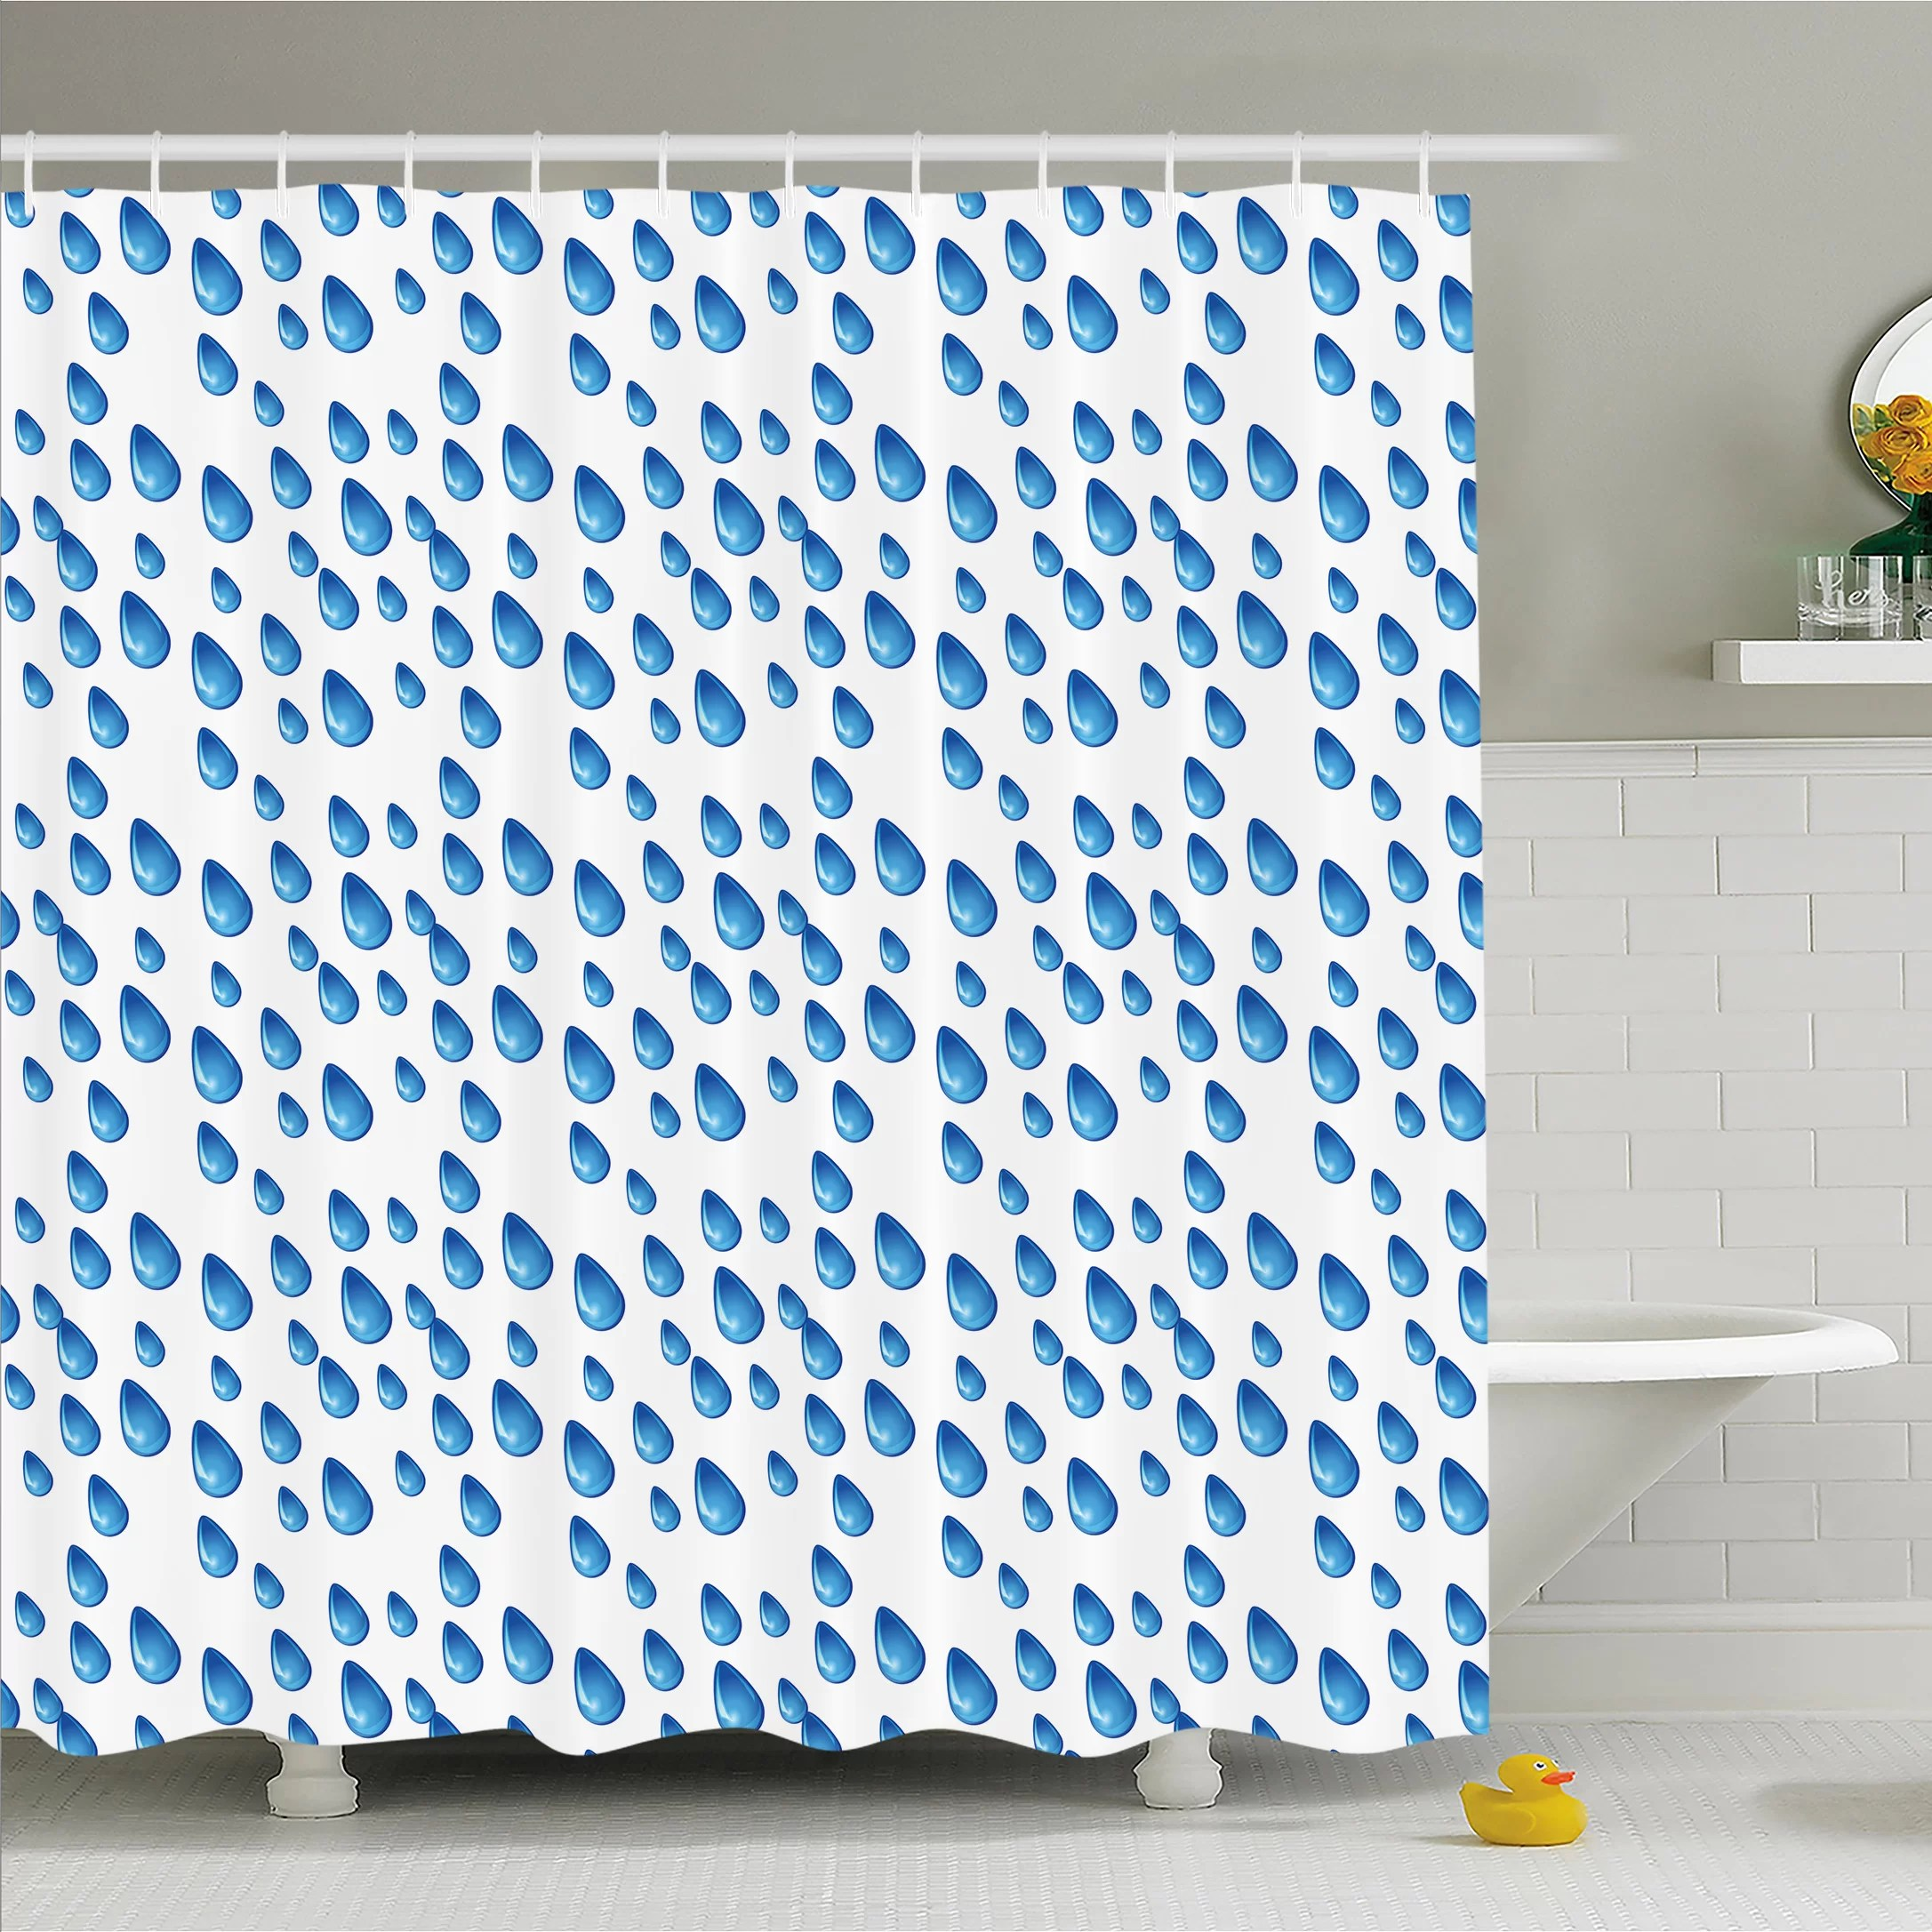 Air Curtain Shower Home Raindrops Fall Autumn Ritual Climate Gravity Water Cycle Air Mass Image Shower Curtain Set